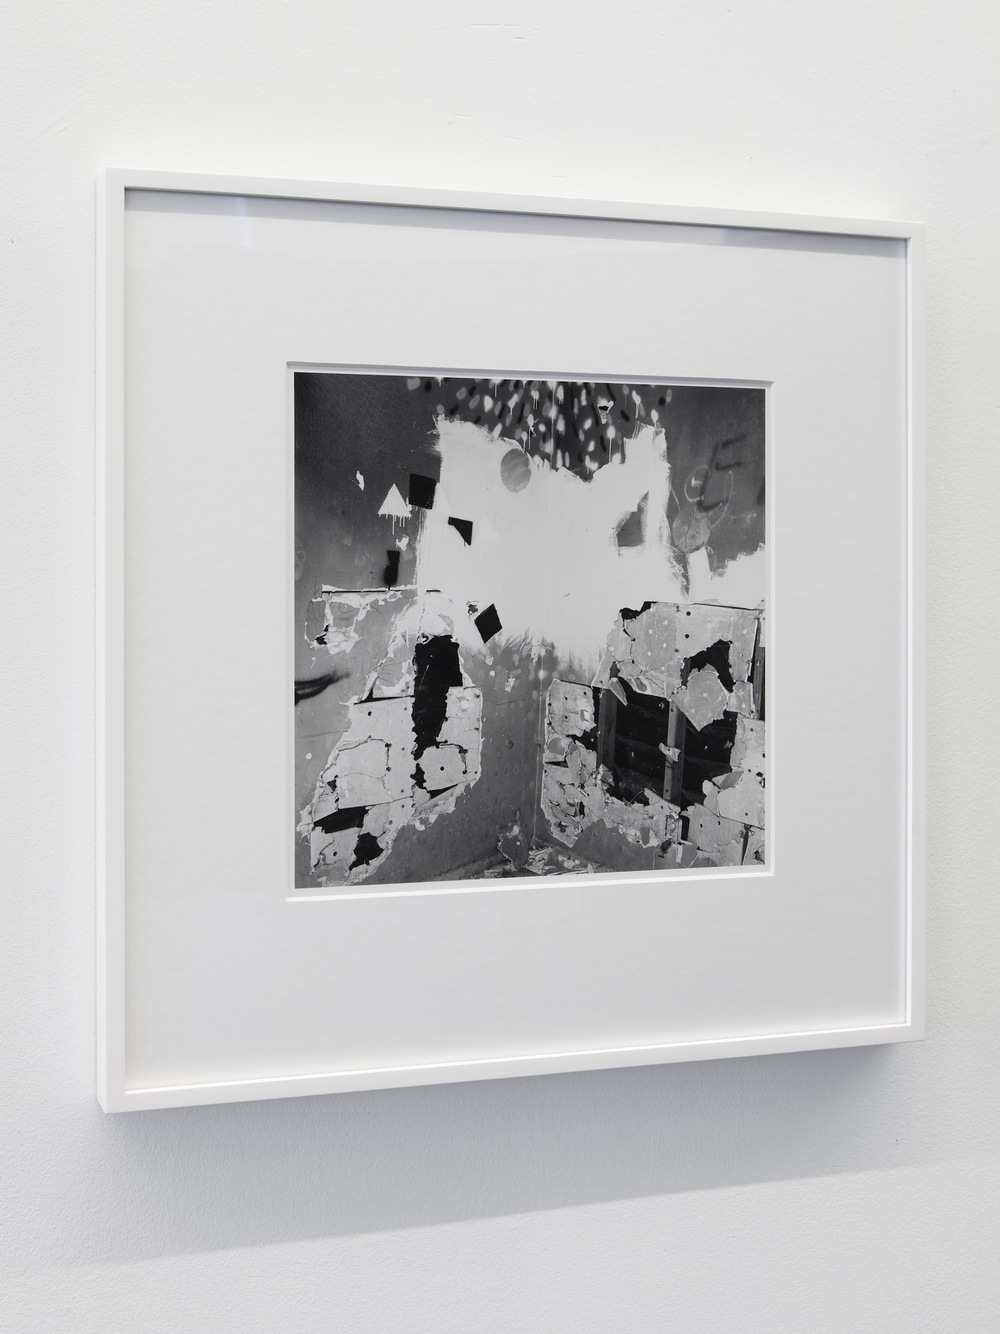 John Divola, from the series Vandalism, 1973-73. Archivally processed B&W photographs, 14 x 14 inches. Courtesy of the artist, Gallery Luisotti Los Angeles and Laura Bartlett Gallery London.